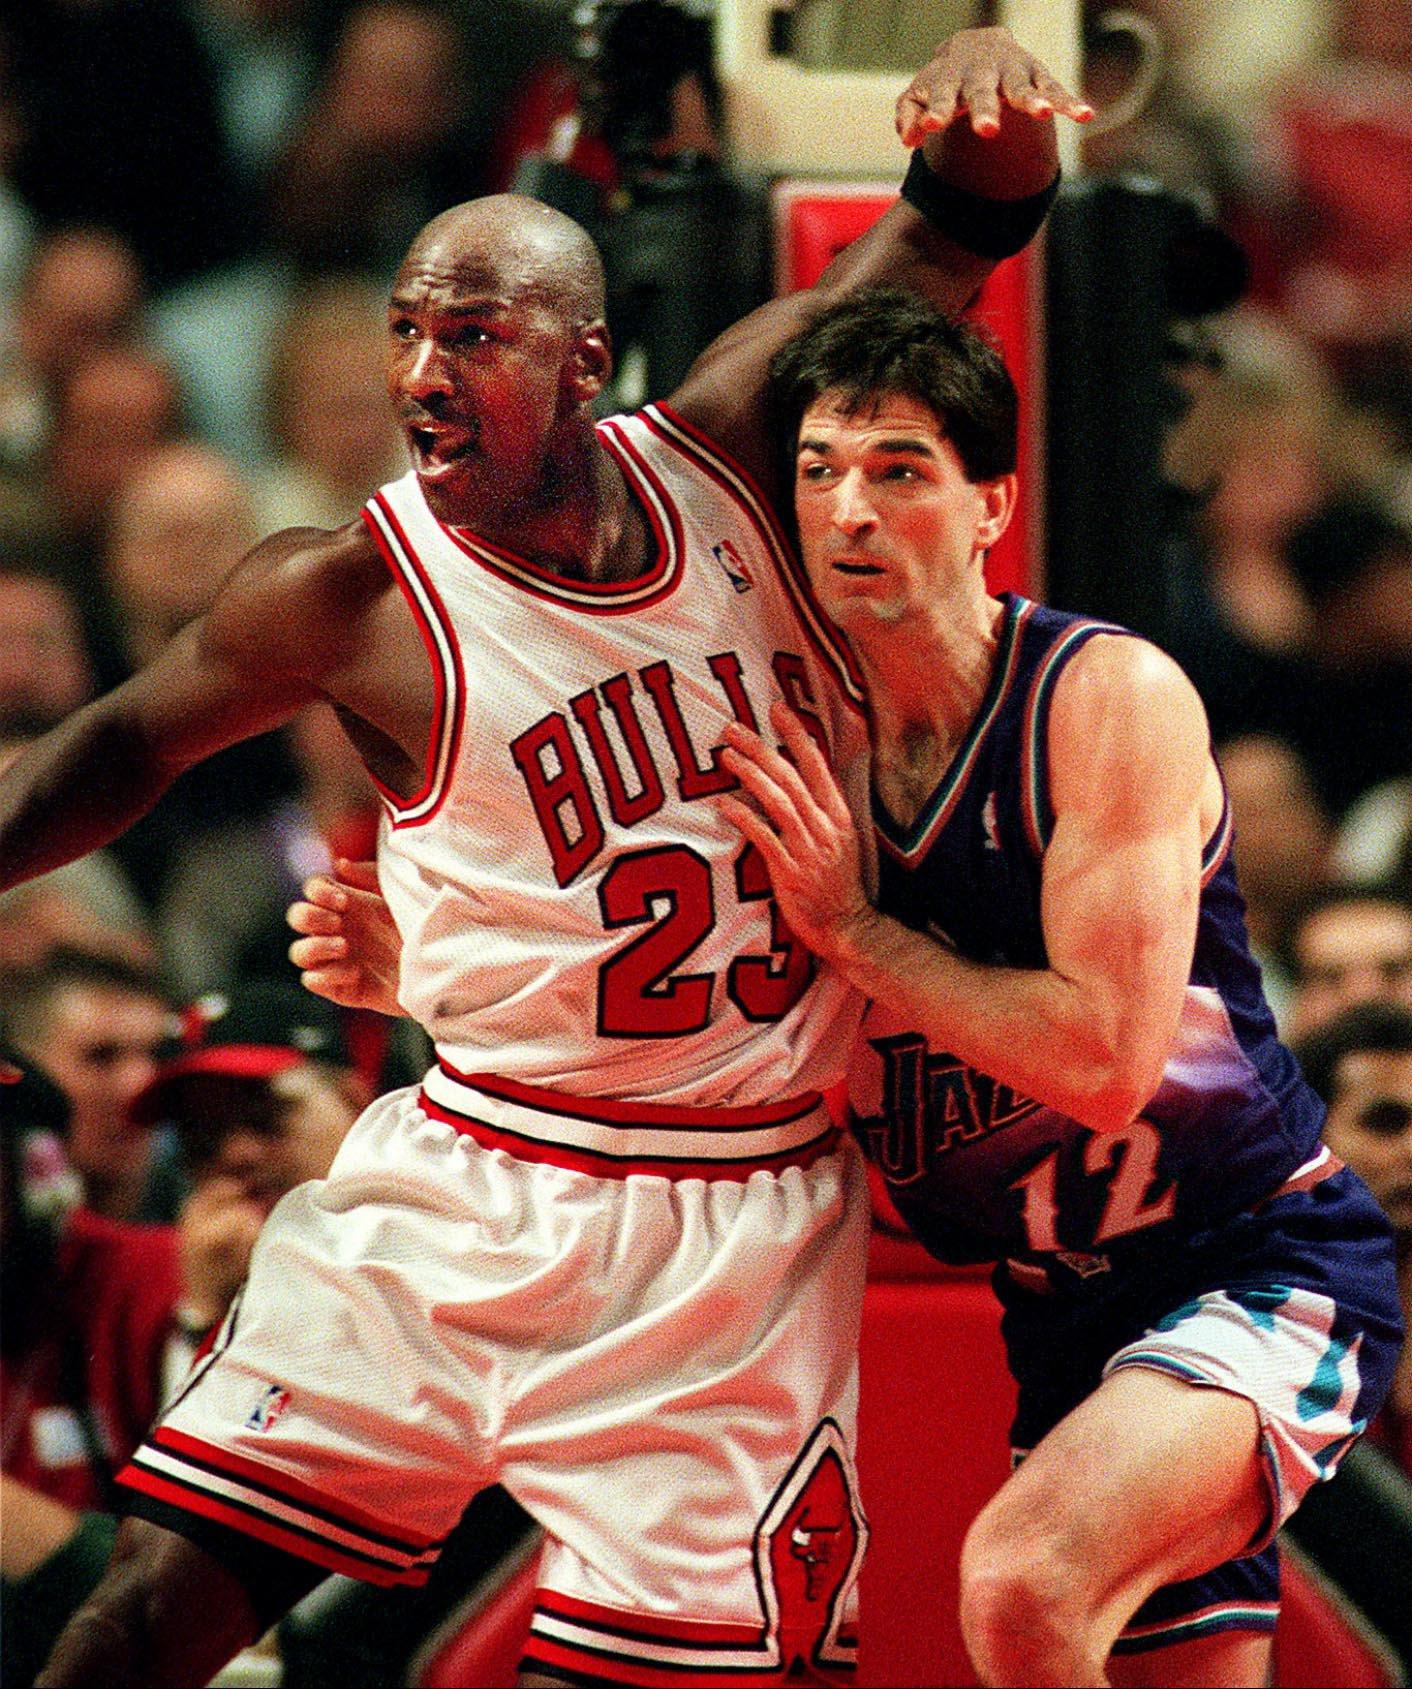 auge Herméticamente plan  Error, Jordan: John Stockton deserved better from 'The Last Dance' | The  Spokesman-Review